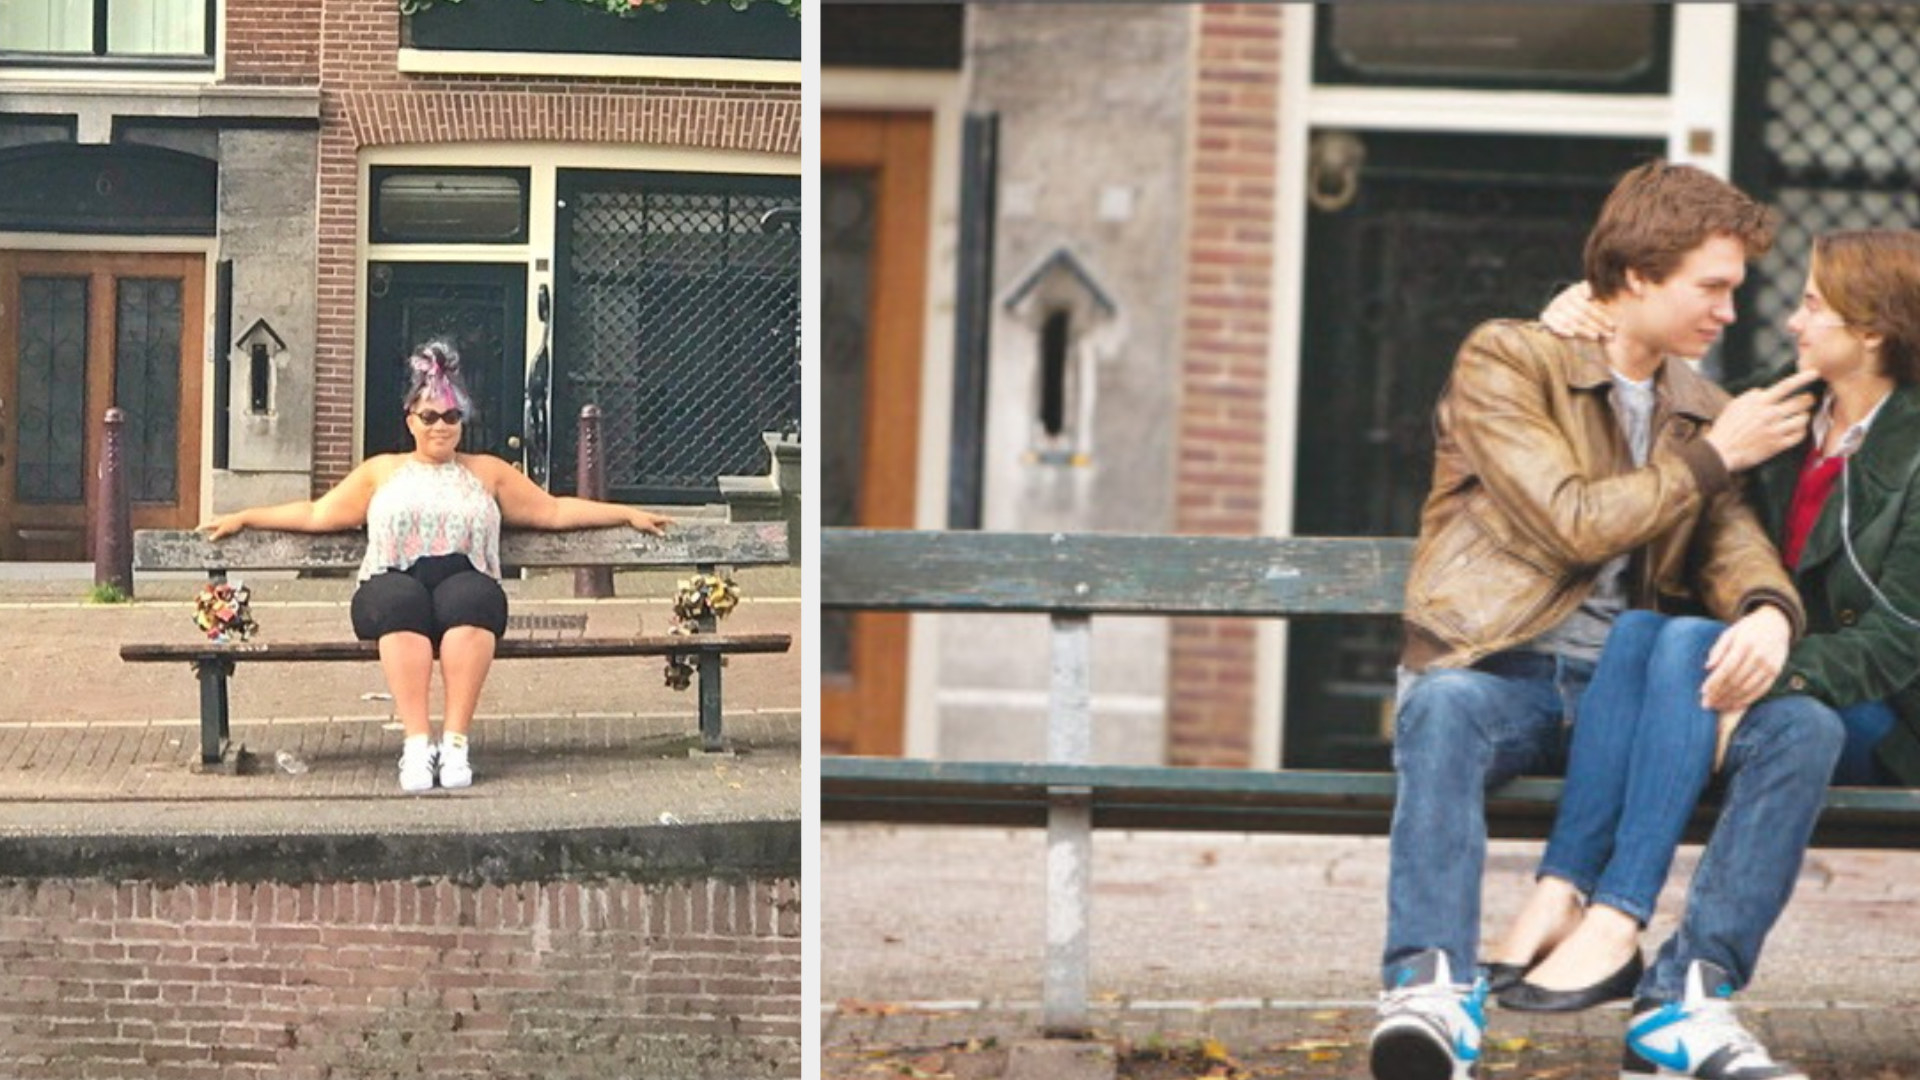 A woman is sitting on a bench on the left with a couple on the right on an Amsterdam street